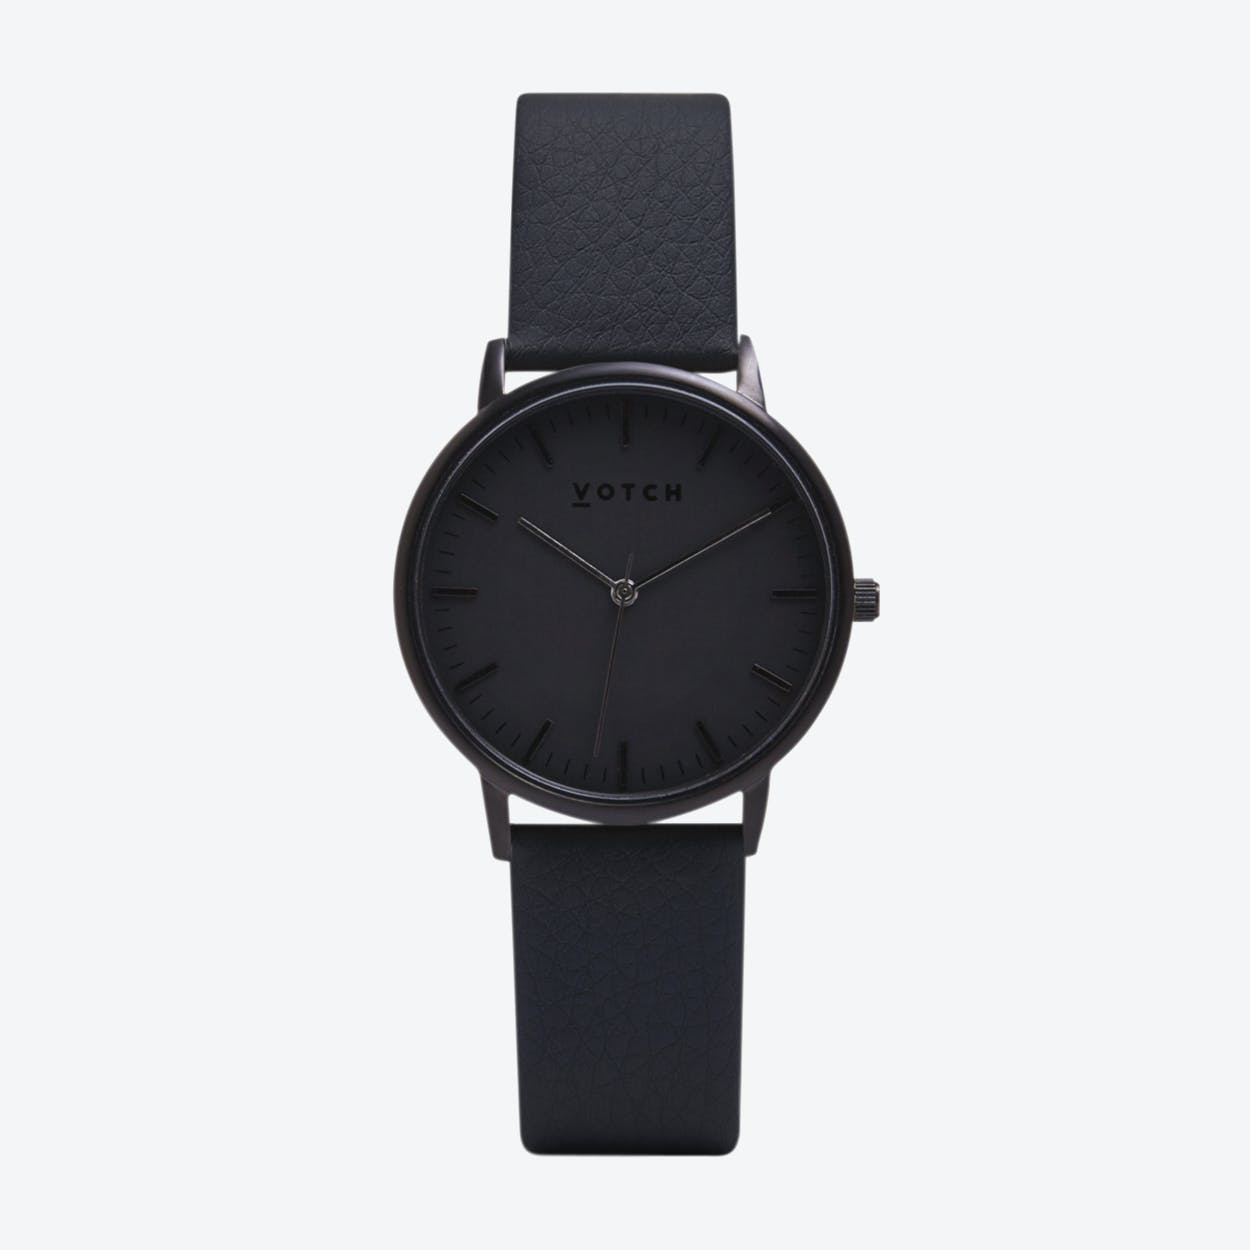 Intense Classic Watch in Black with Black Face and Dark Grey Vegan Leather Strap, 36mm